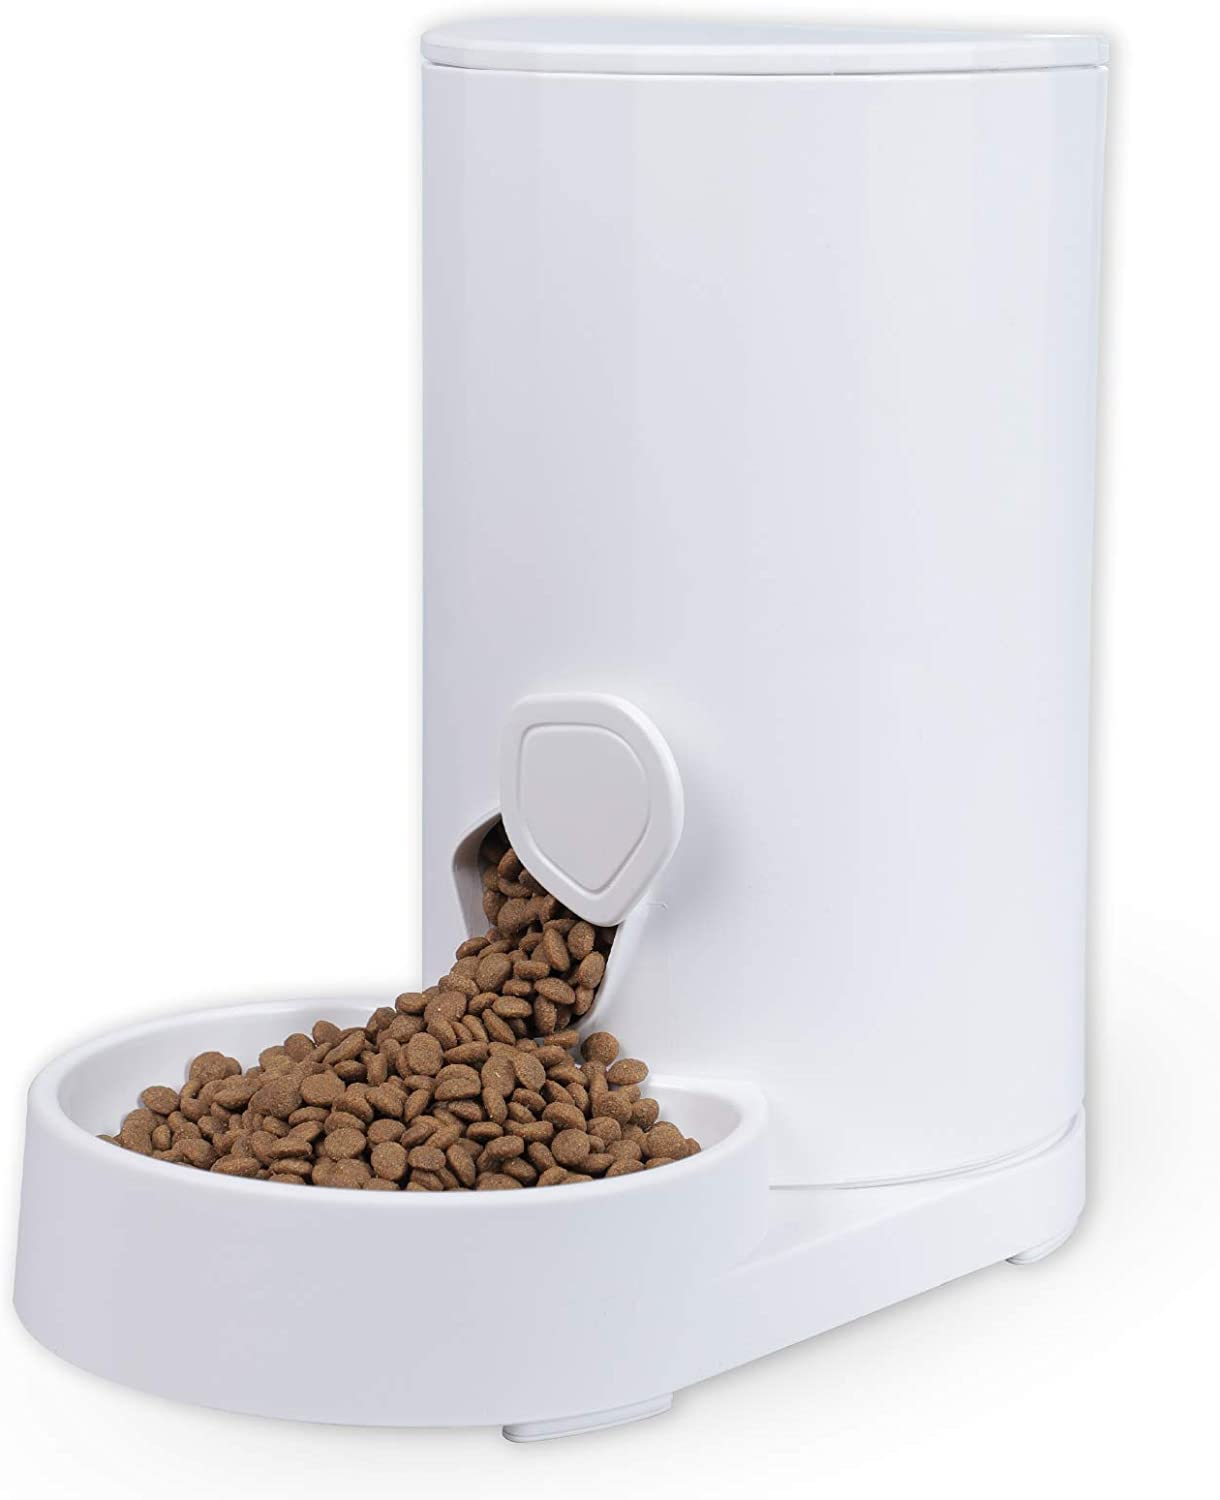 Sfozstra Automatic Pet Water, Pet Water Feeder Dispenser, Dog Cat Water Food (Feeder)